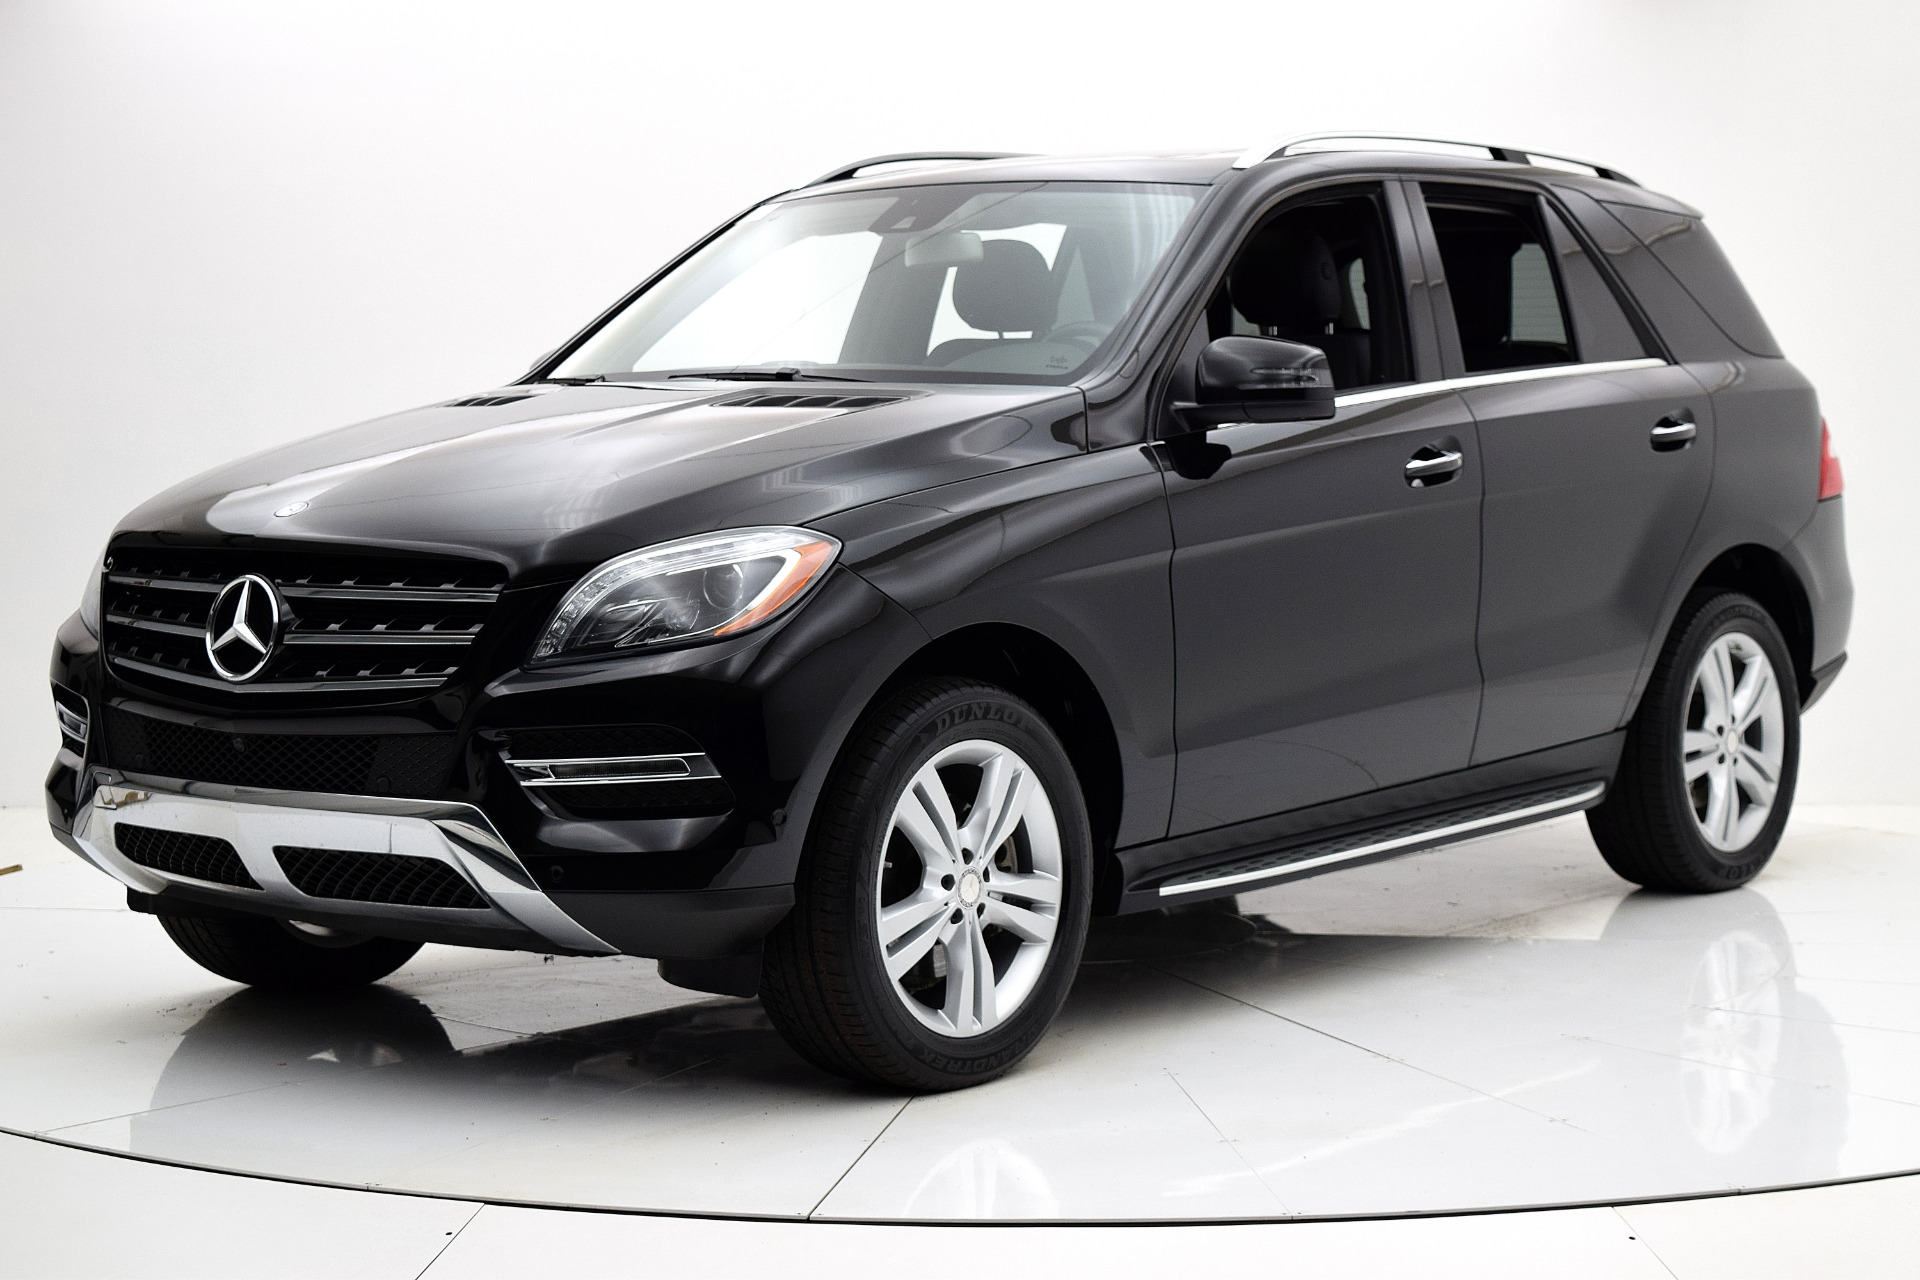 Used 2015 mercedes benz m class ml 350 for sale 39 880 for Mercedes benz ml 350 used